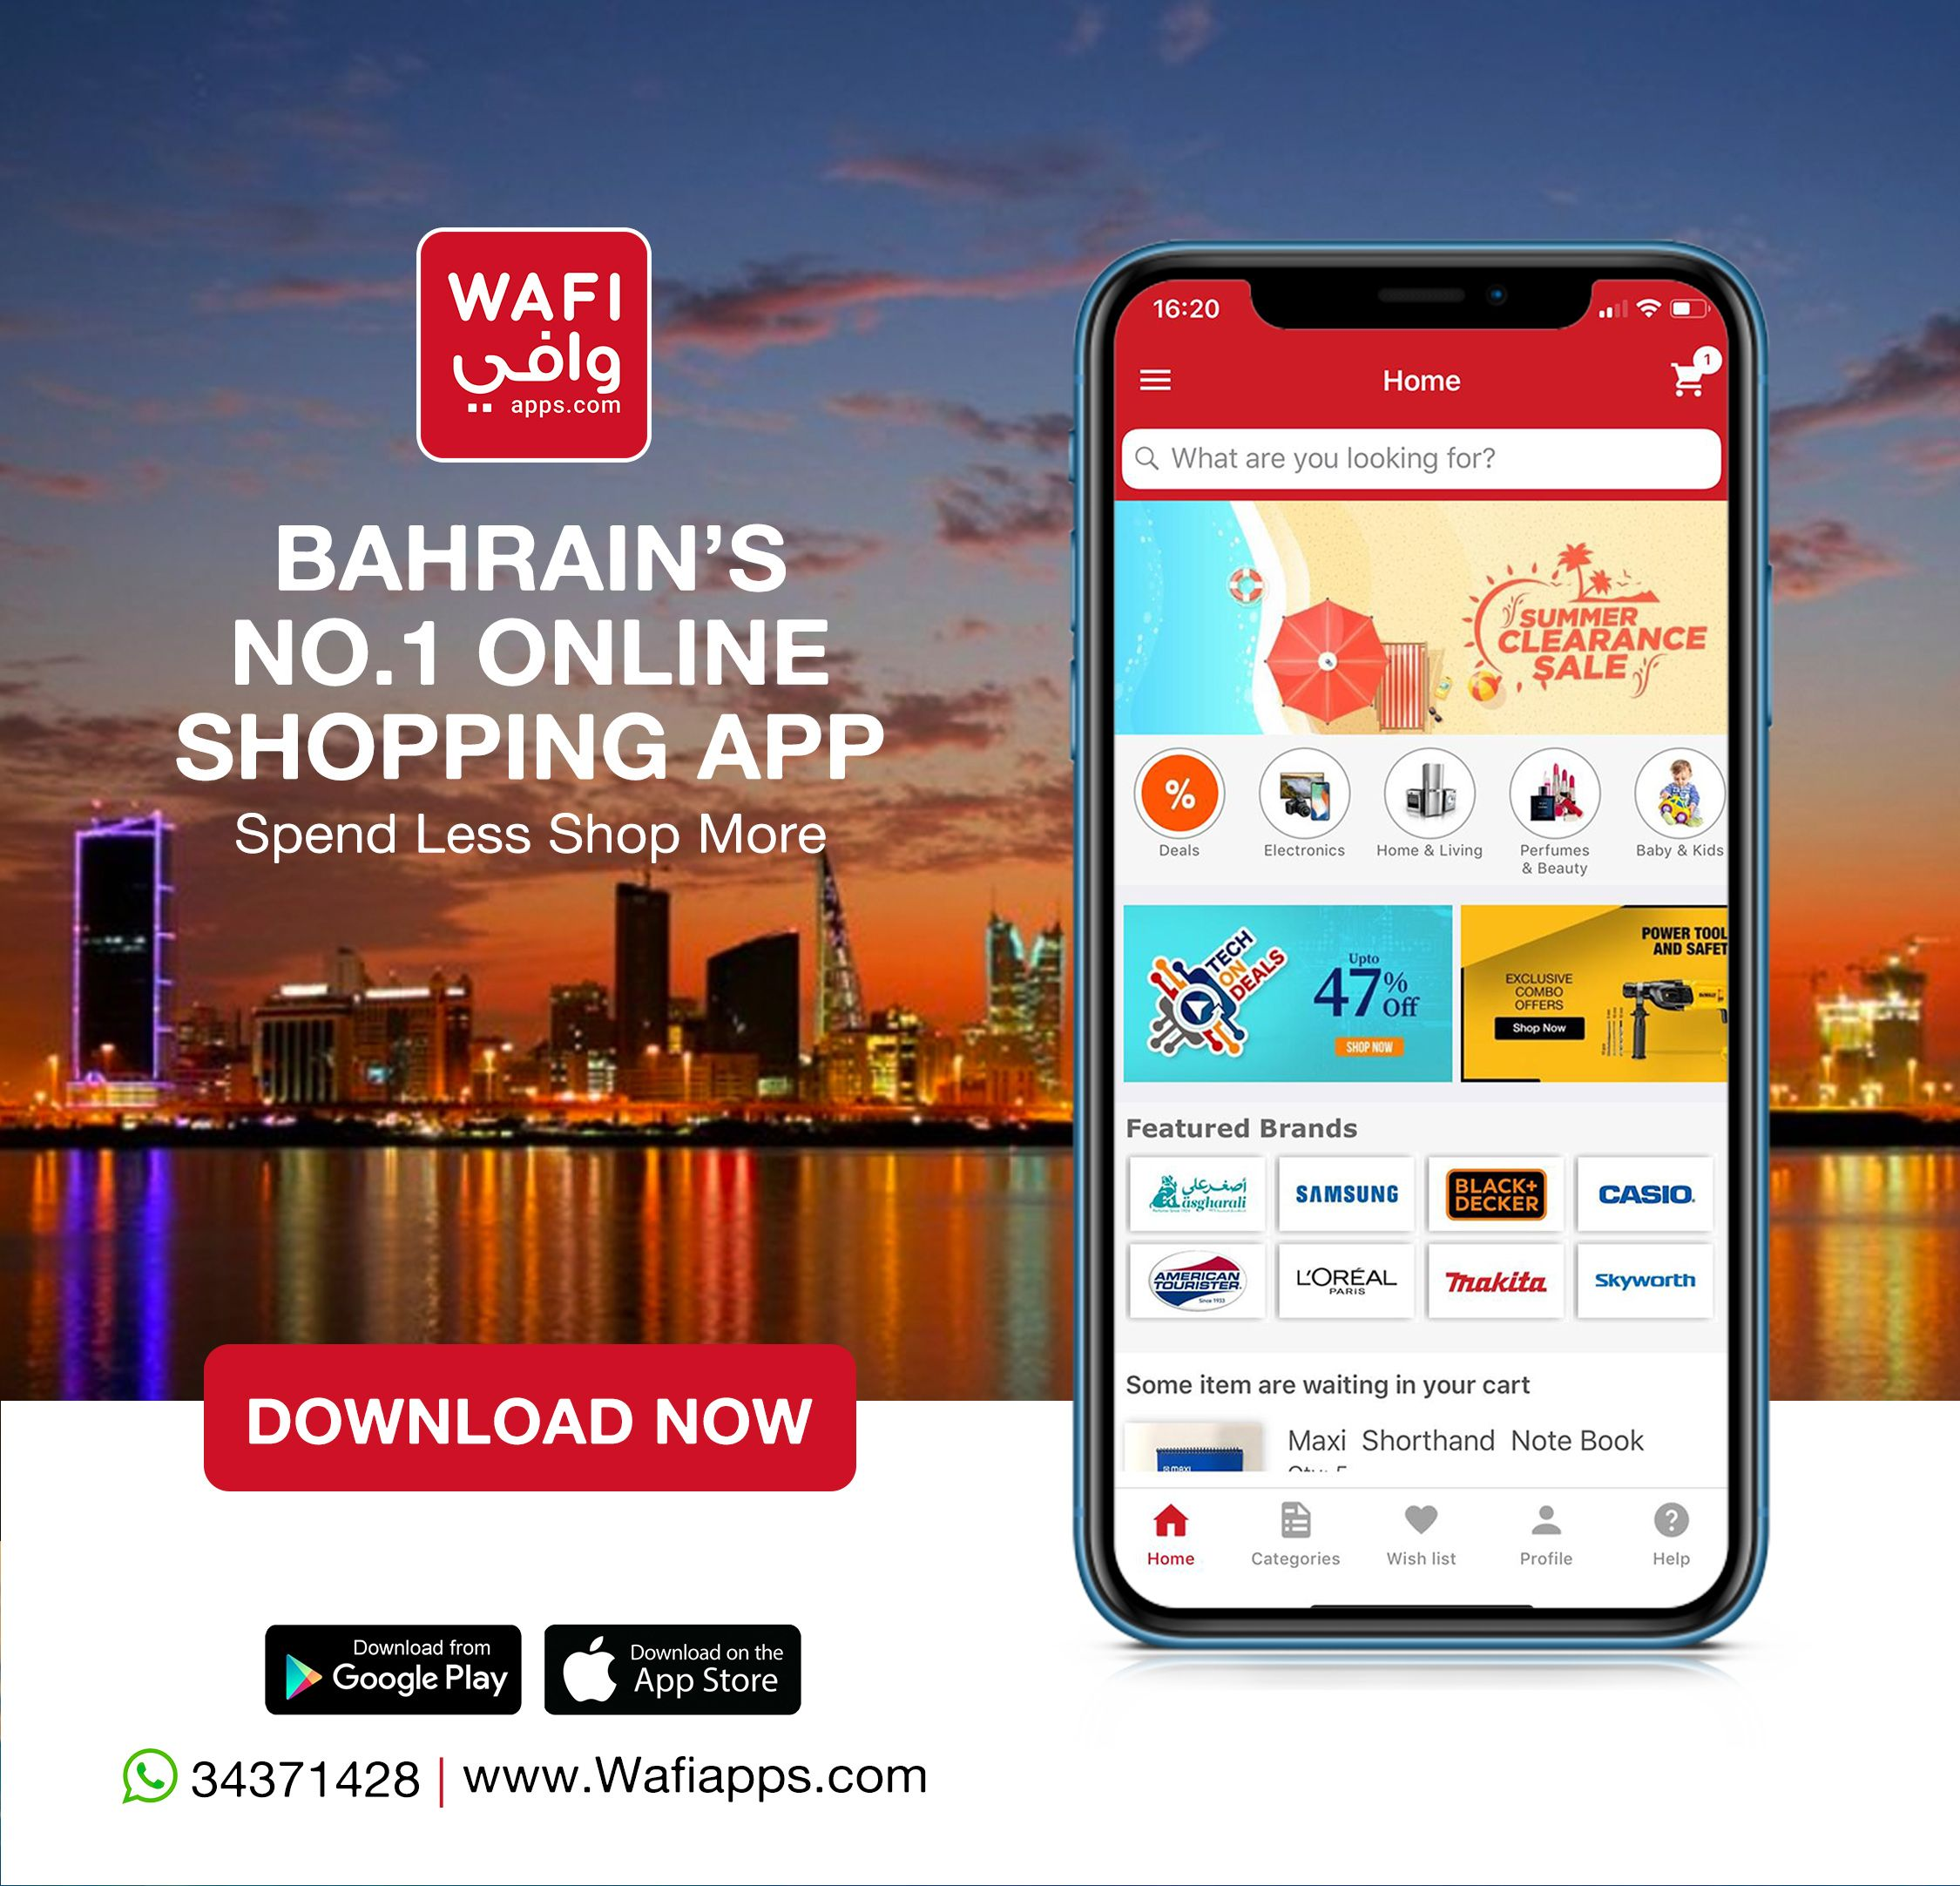 Get In the Groove! Be a part of Bahrain's Largest Online